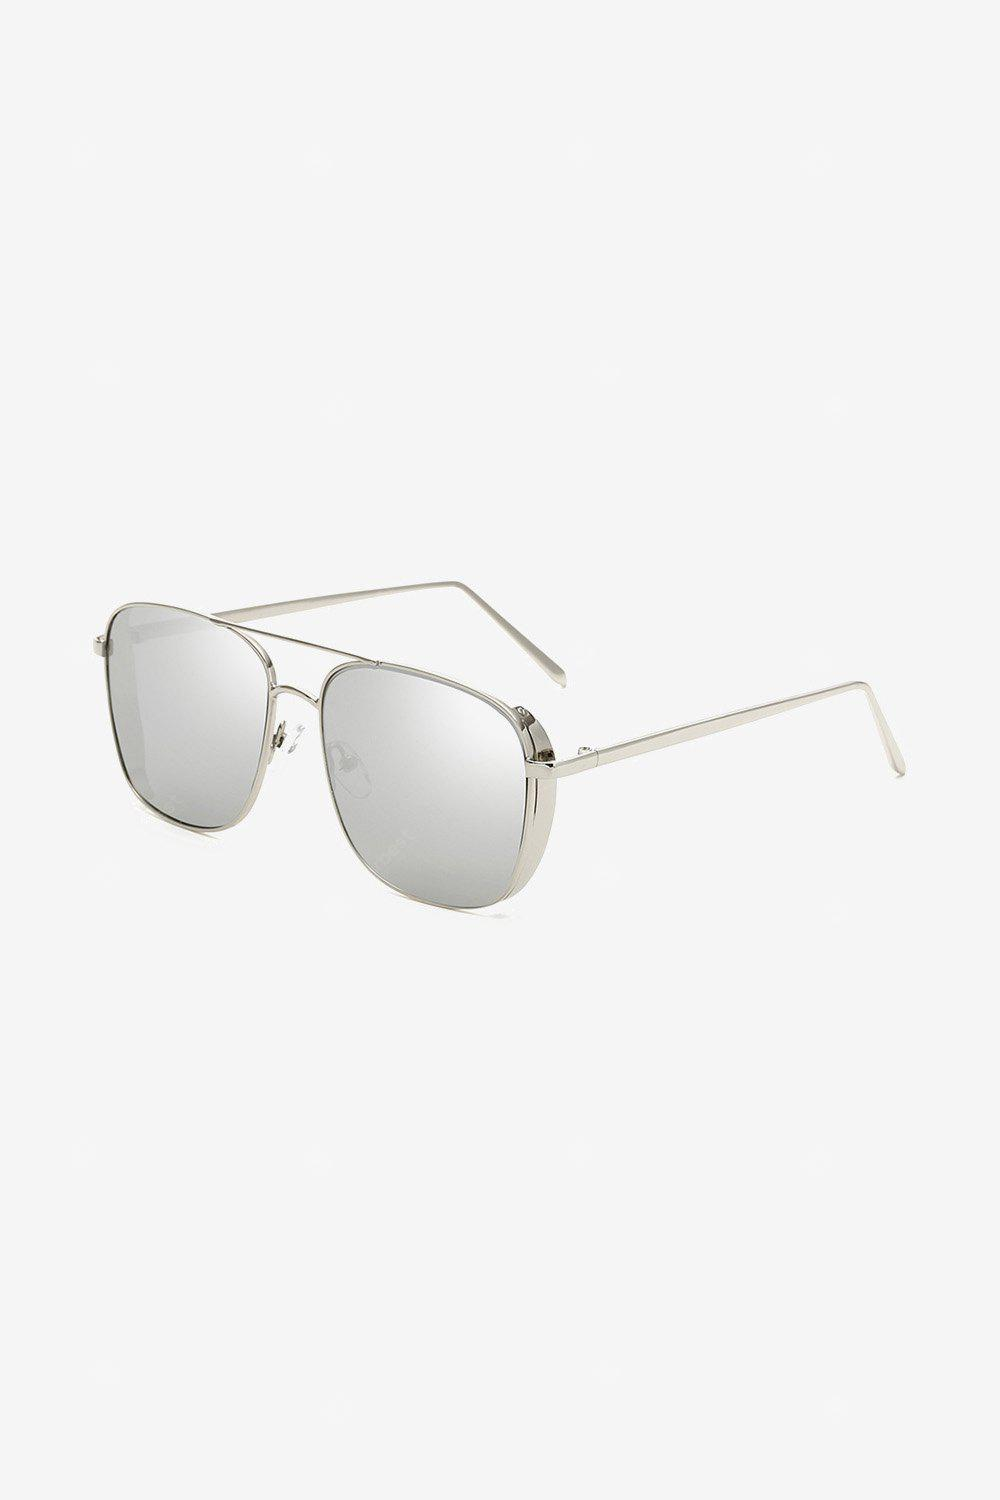 Anti-UV Colored PC Lens Square Sunglasses